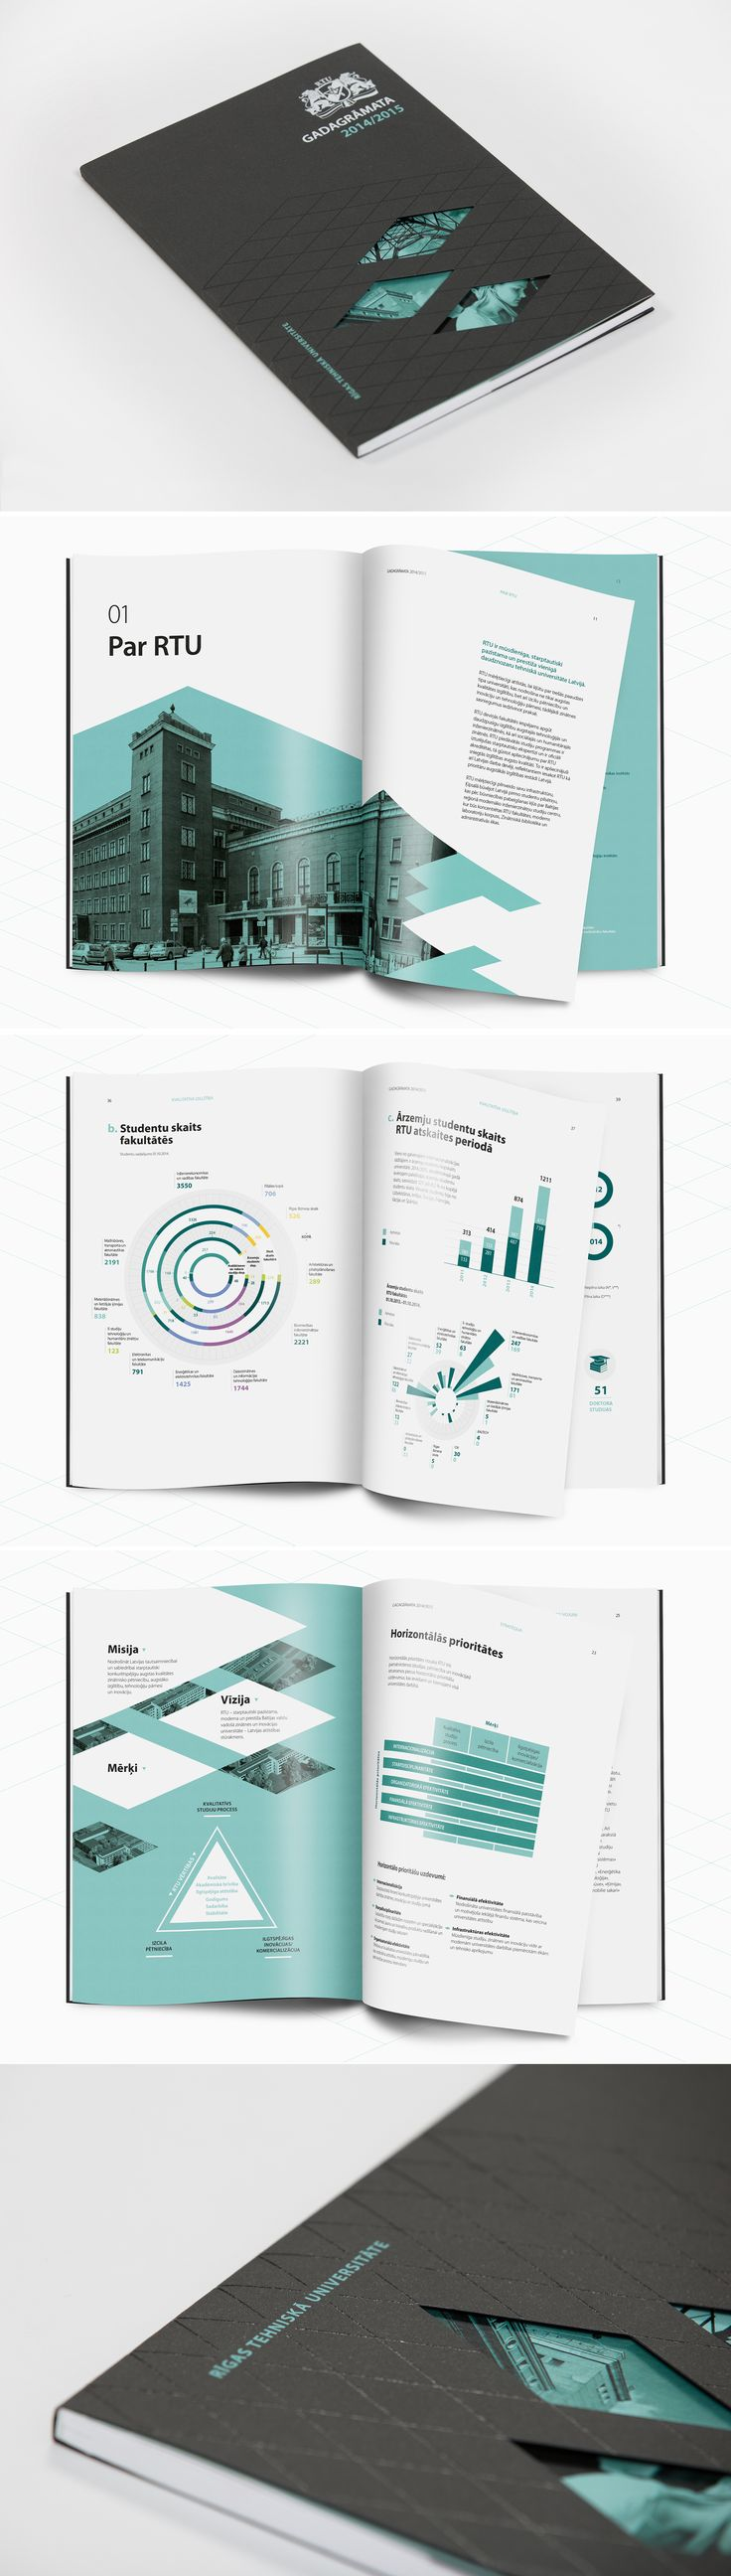 Design of the first Annual report for the oldest higher education institution in Latvia – Riga Technical University (RTU). It is covered in bespoke dark suit with geometric varnish pattern. Throughout pages electrical green colour shapes interchanges with white space. Similarly to RTU themselves – their strong traditions live alongside development and openness. #graphicdesign #annualreport